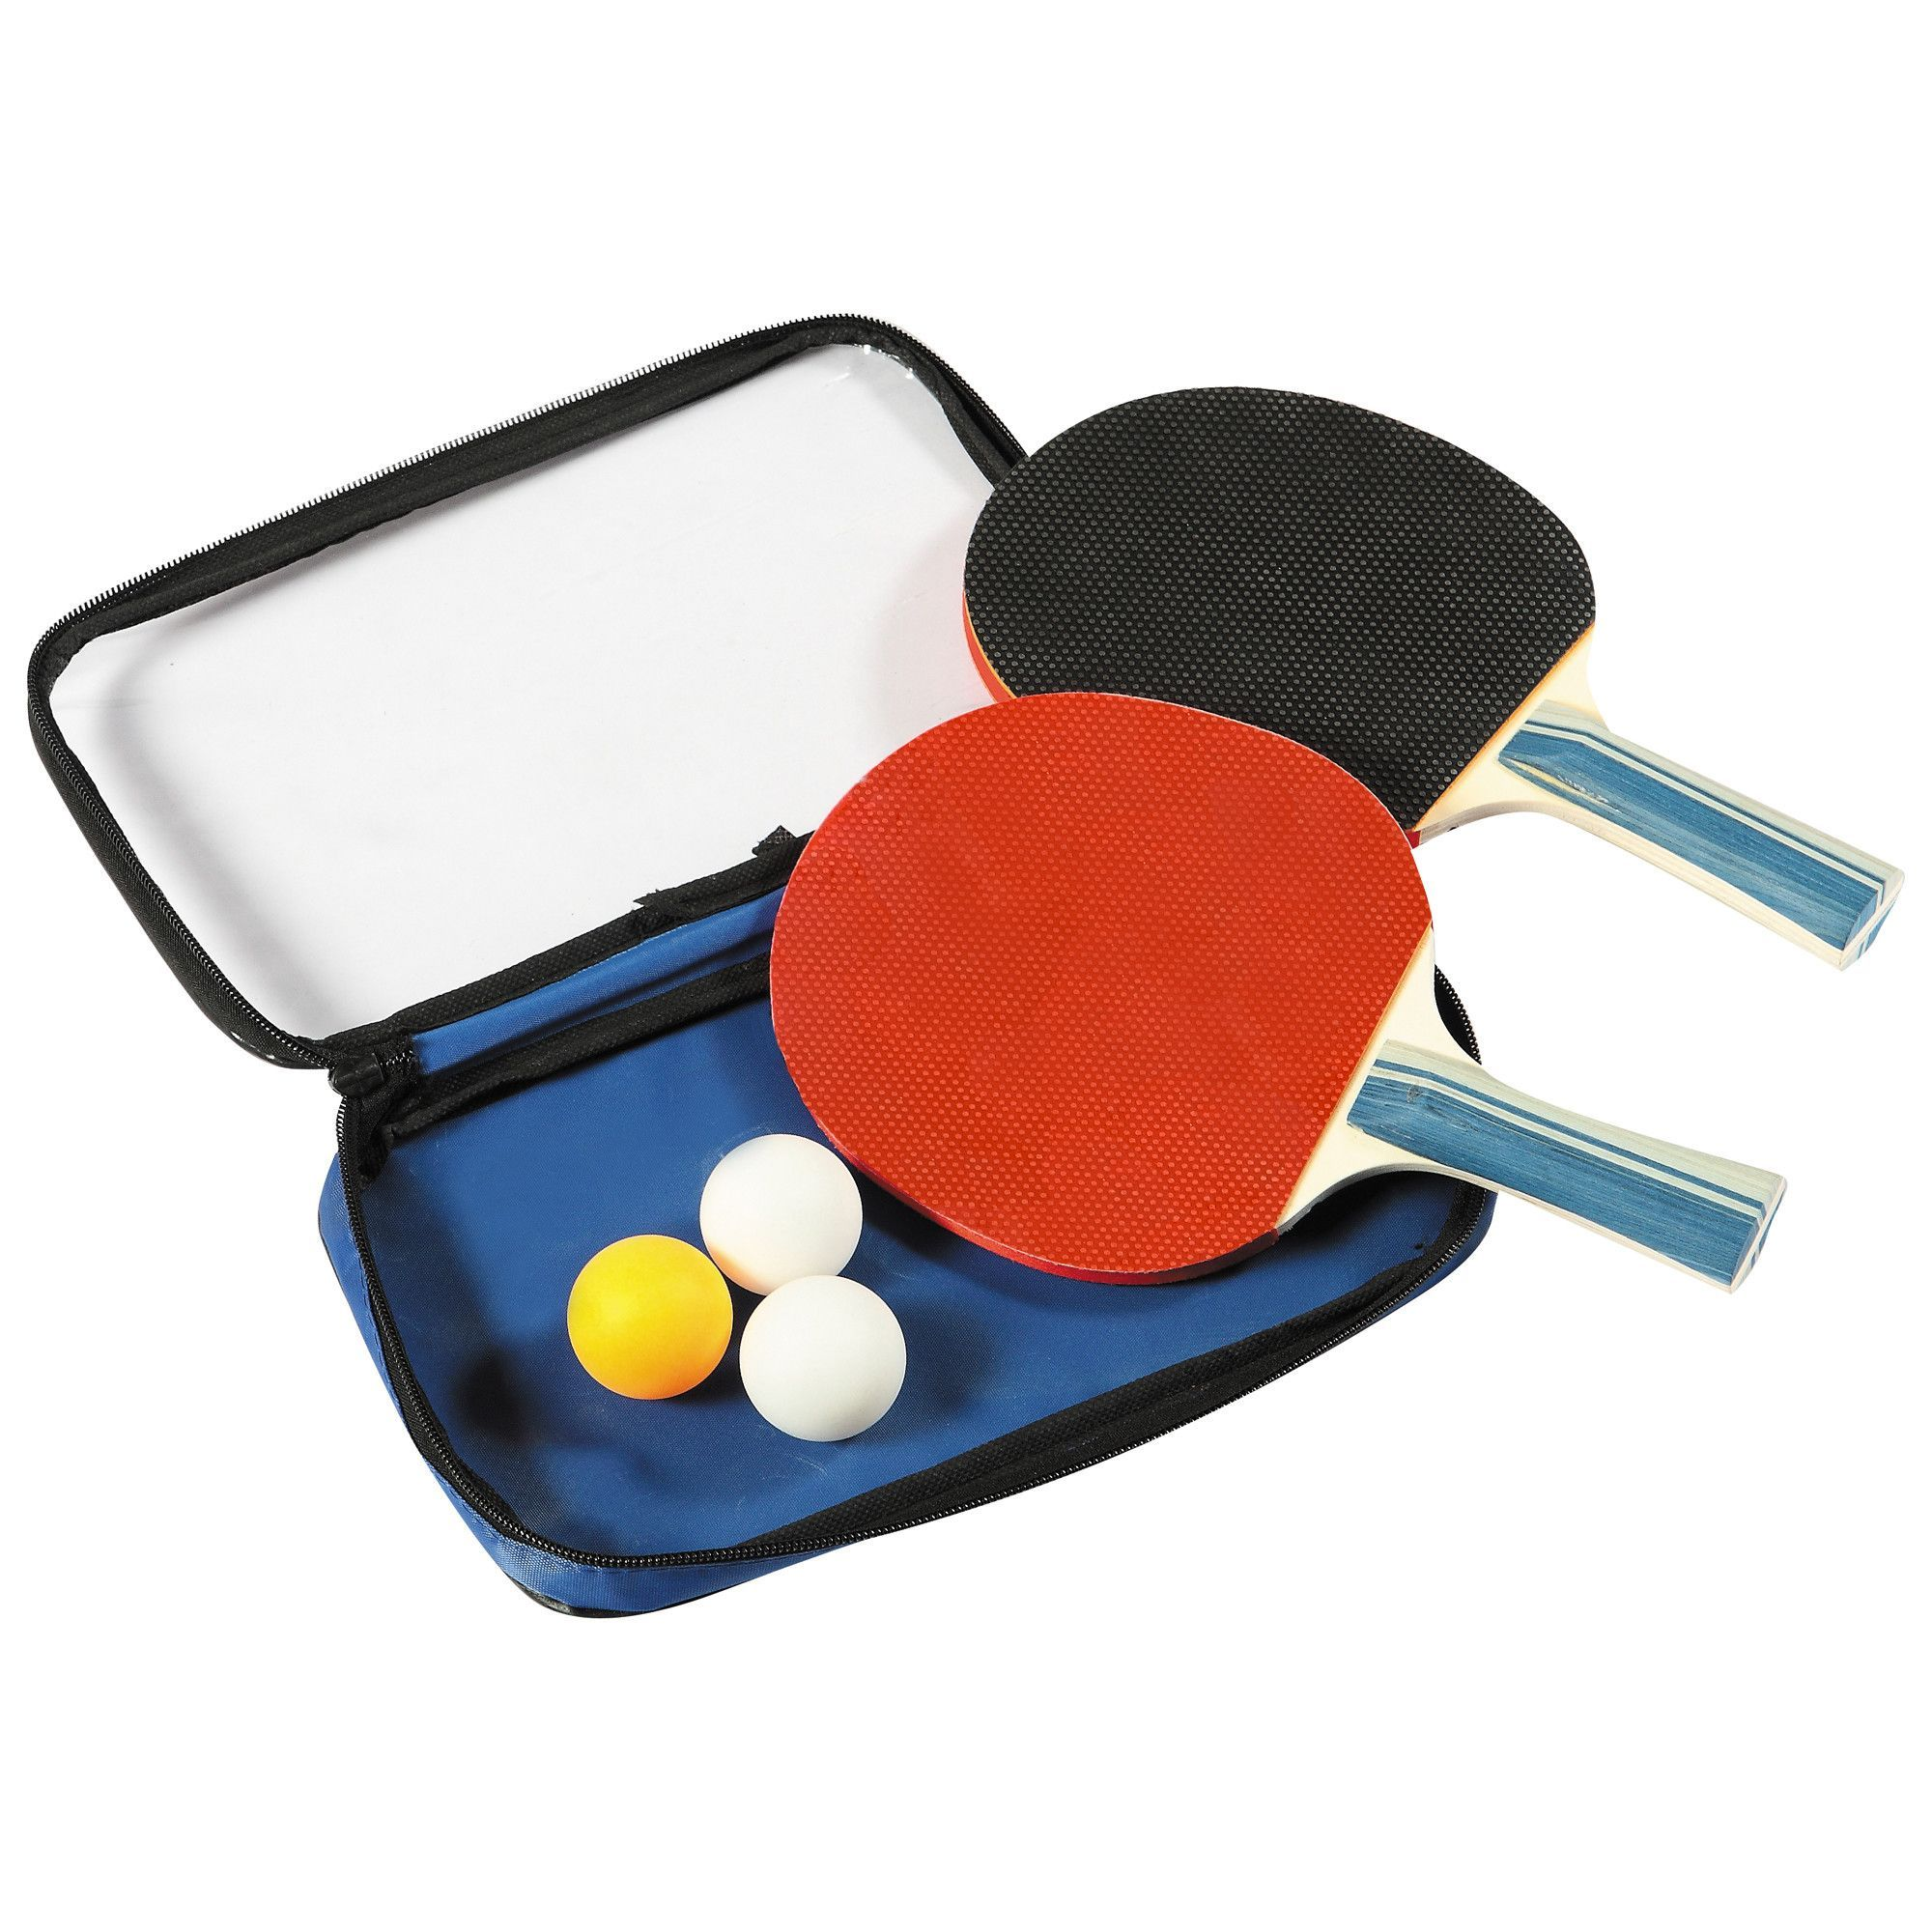 Control spin table tennis 2 player racket and ball set ping pong control spin table tennis 2 player racket and ball set fandeluxe Gallery